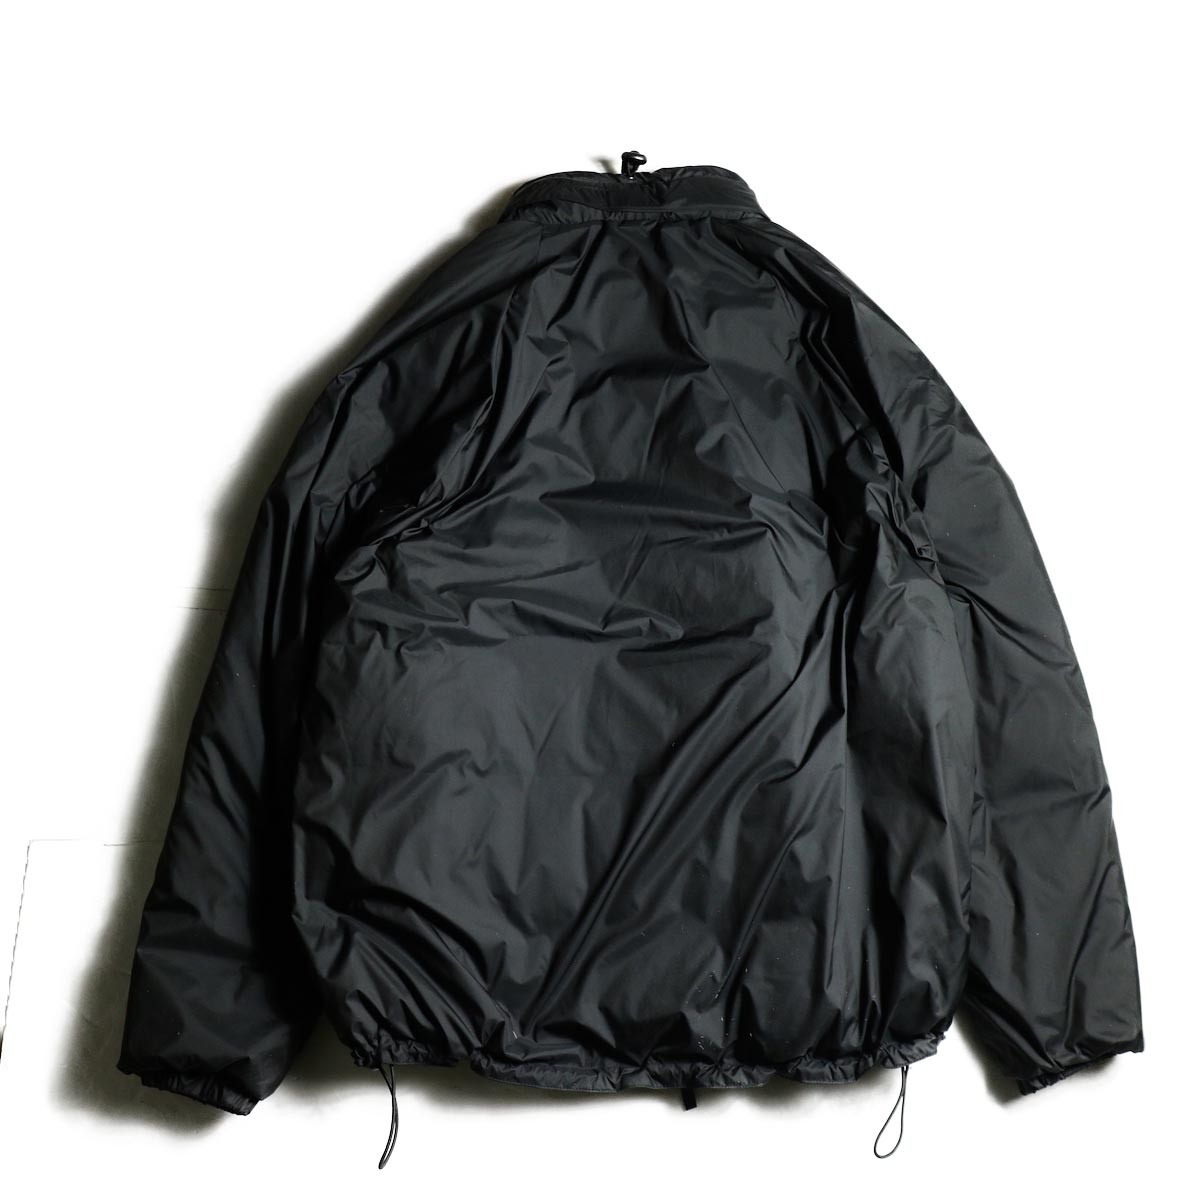 J&S Franklin / BRITISH ARMY PCS LIGHT WEIGHT DOWN JACKET (Black) 背面